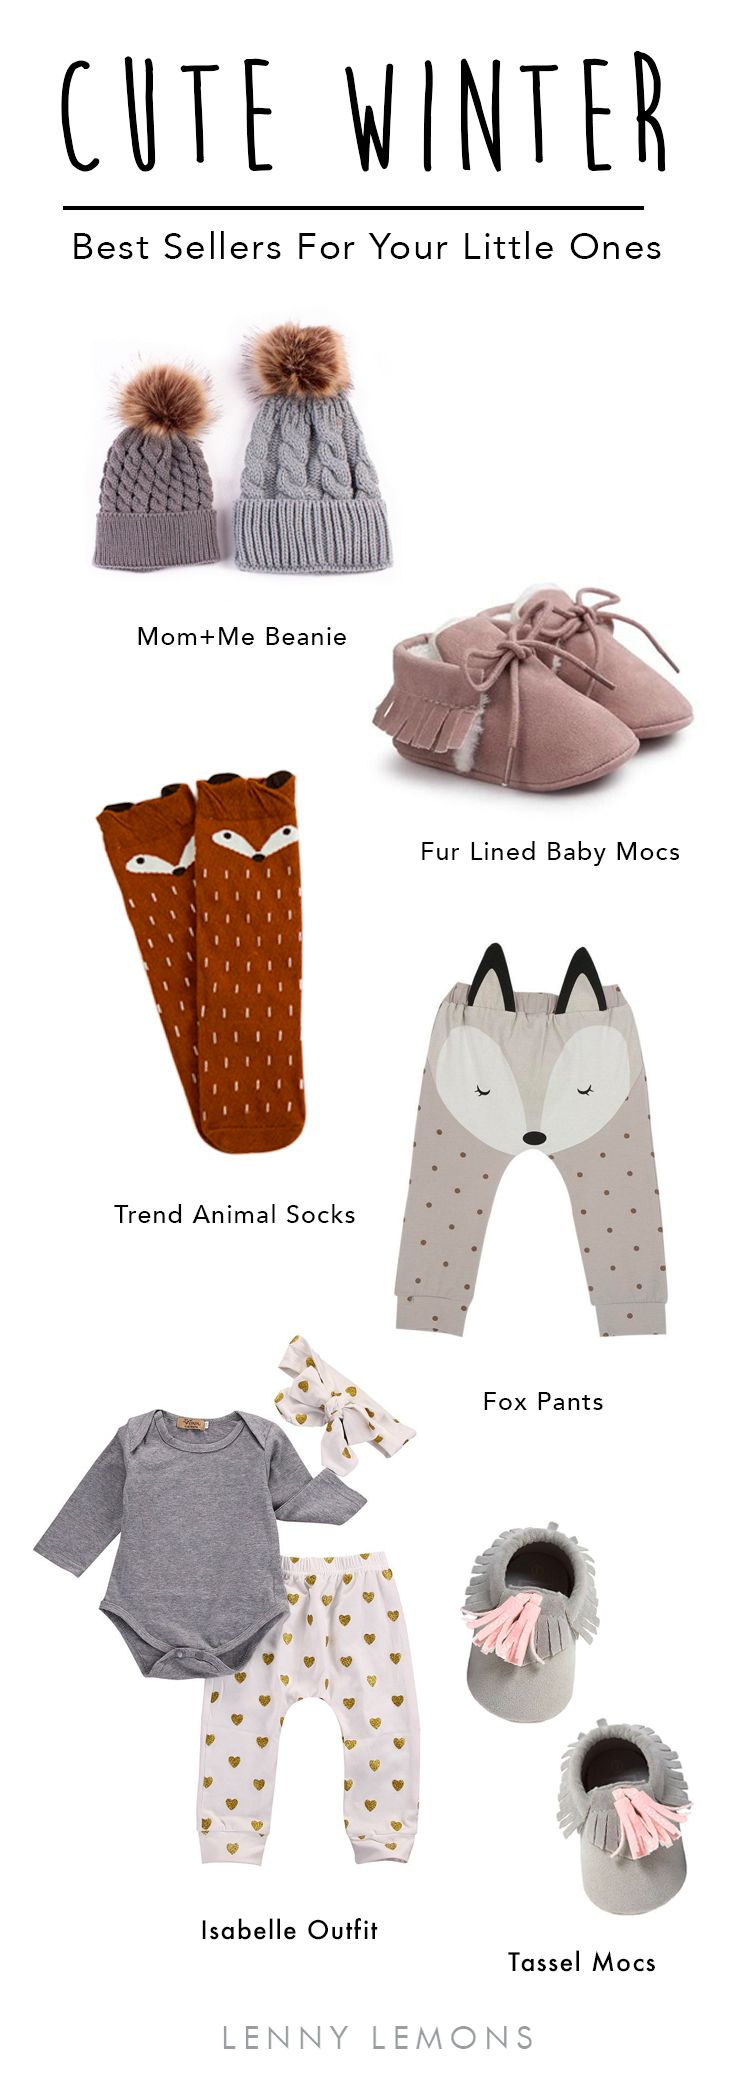 FREE USA SHIPPING + UP TO 70% OFF. Cutest items for your baby girl. Choose between our best sellers to dress your baby girl this winter. Lenny Lemons, Baby and toddler apparel. Baby clothes, baby outfits. Fashion for babies.